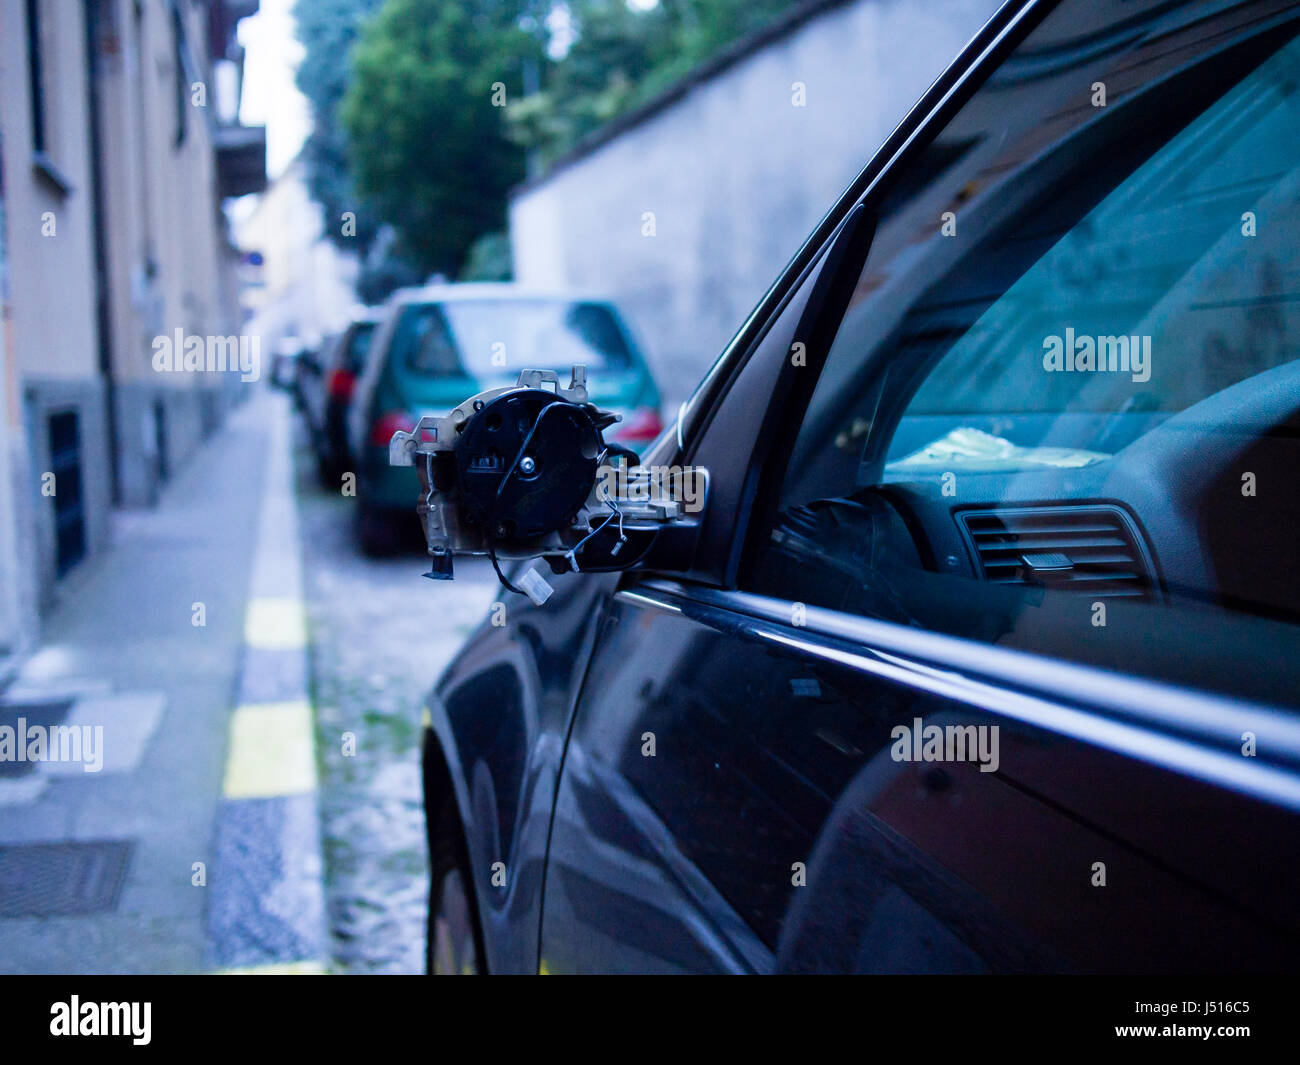 Car with broken mirror parked in the street - Stock Image